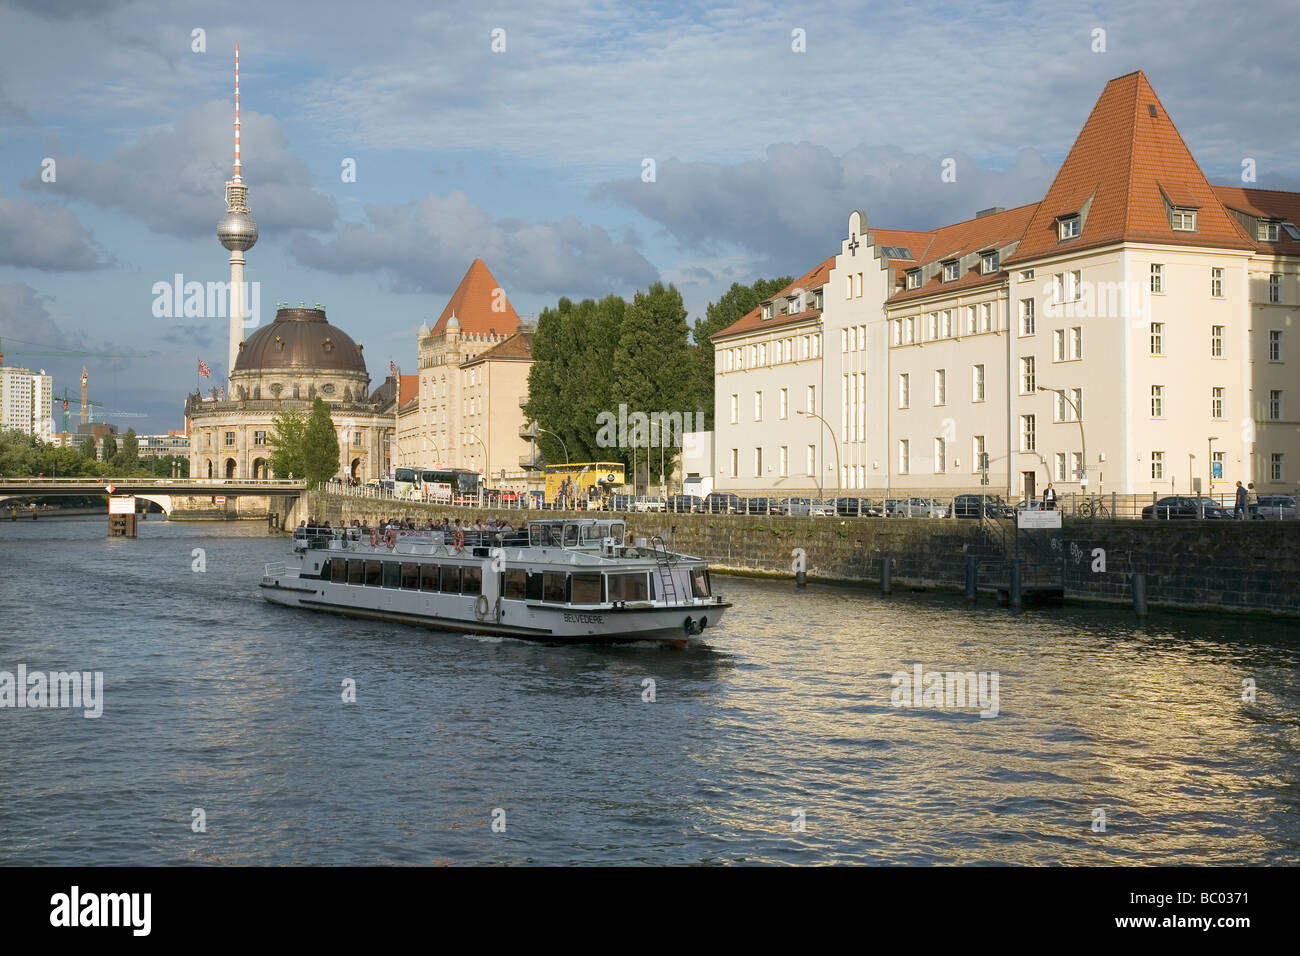 River Spree with Bode Museum, Fernsehturm and tourist boat, Berlin, Germany - Stock Image